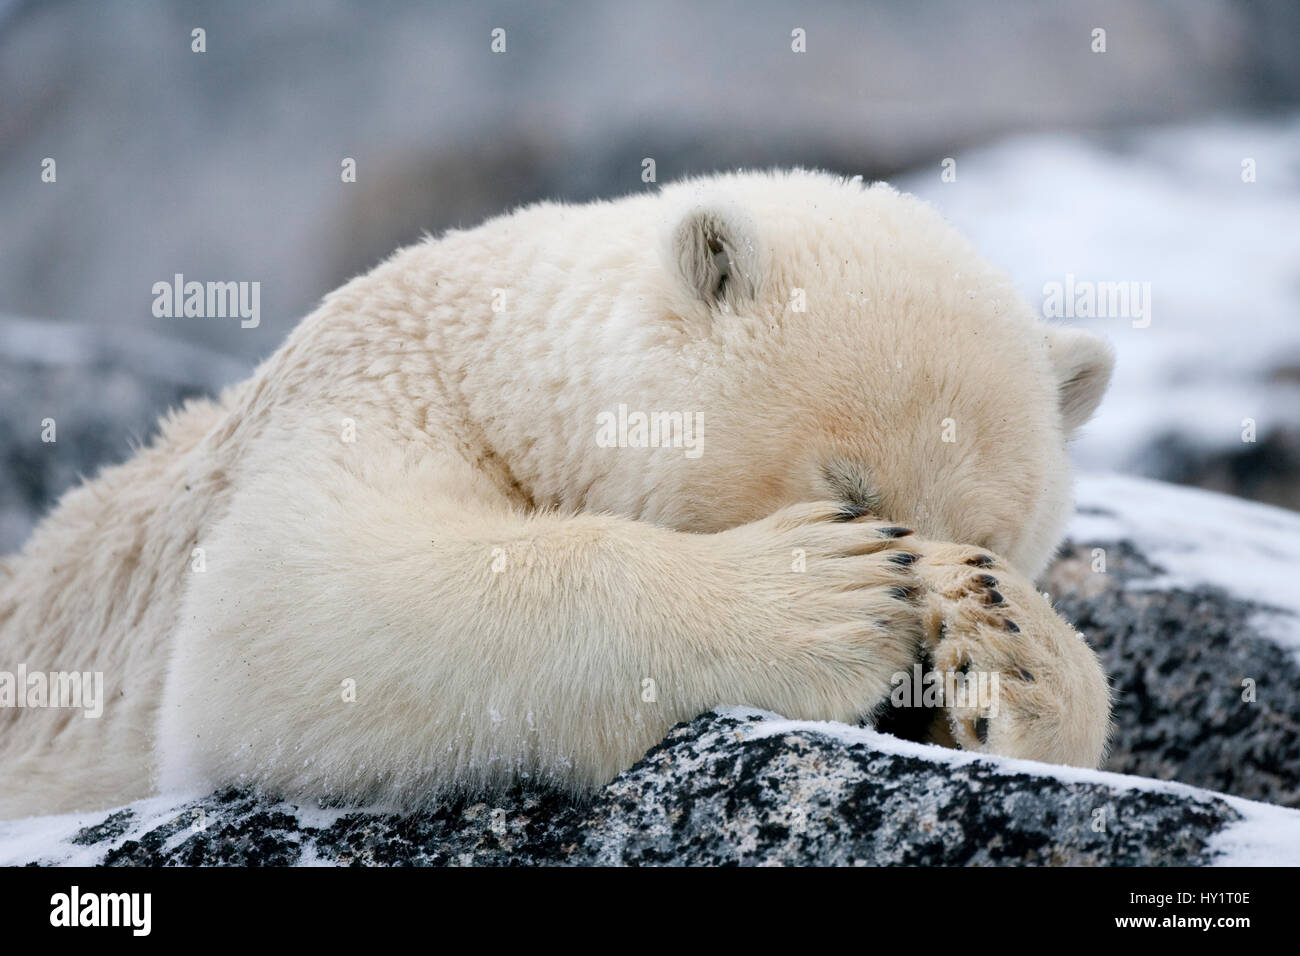 RF- Polar bear (Ursus maritimus) with paws covering eyes, Svalbard, Norway, September 2009. Endangered species. - Stock Image